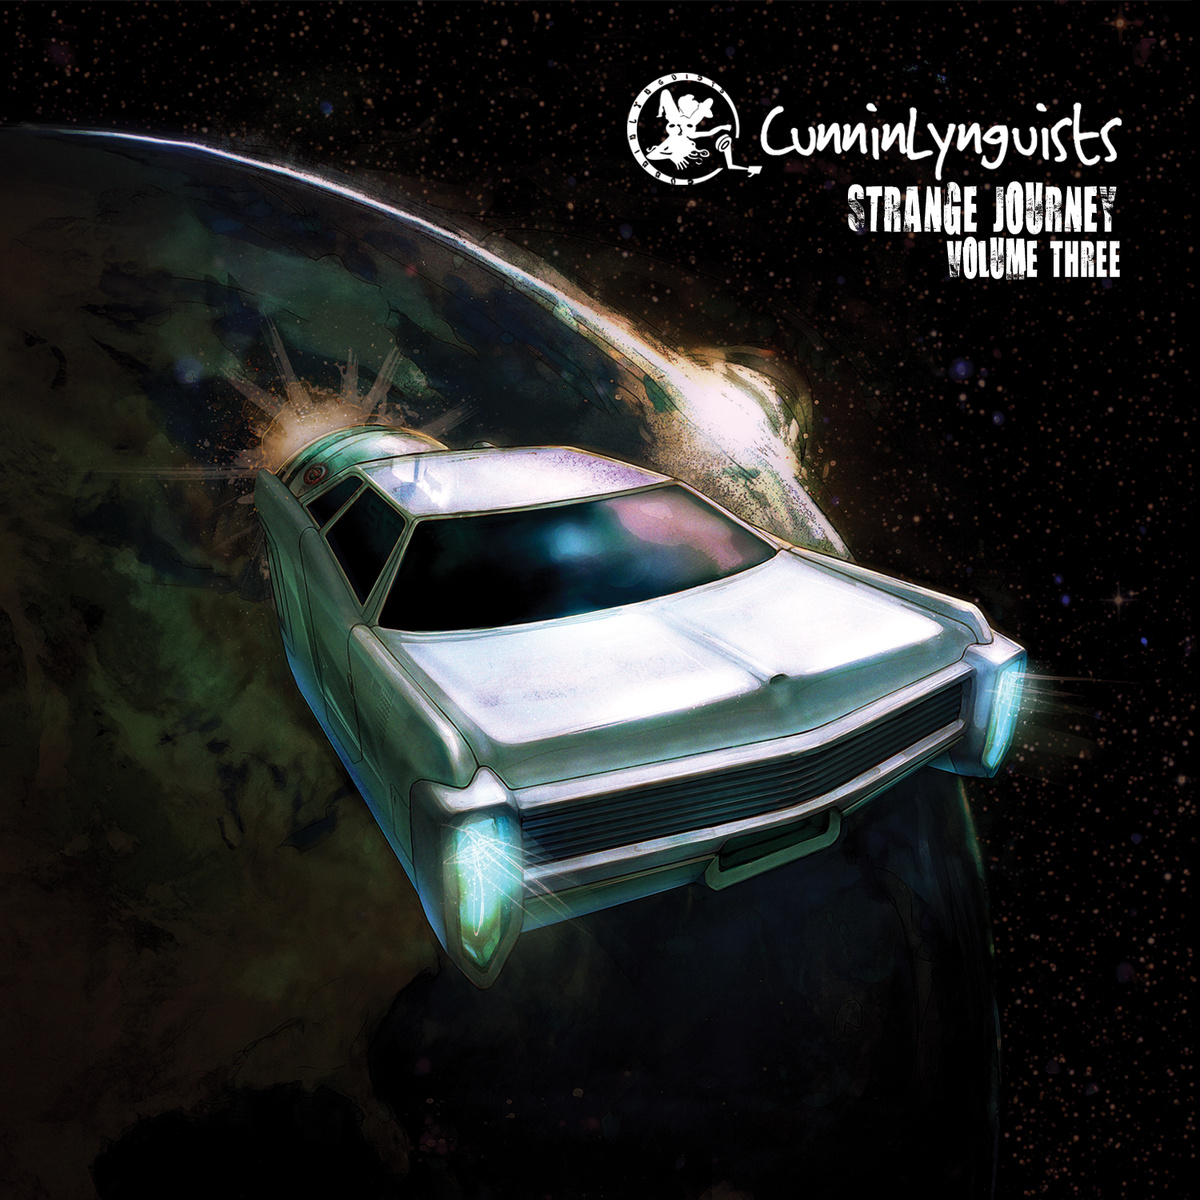 Listen: CunninLynguists – Strange Journey Vol. 3